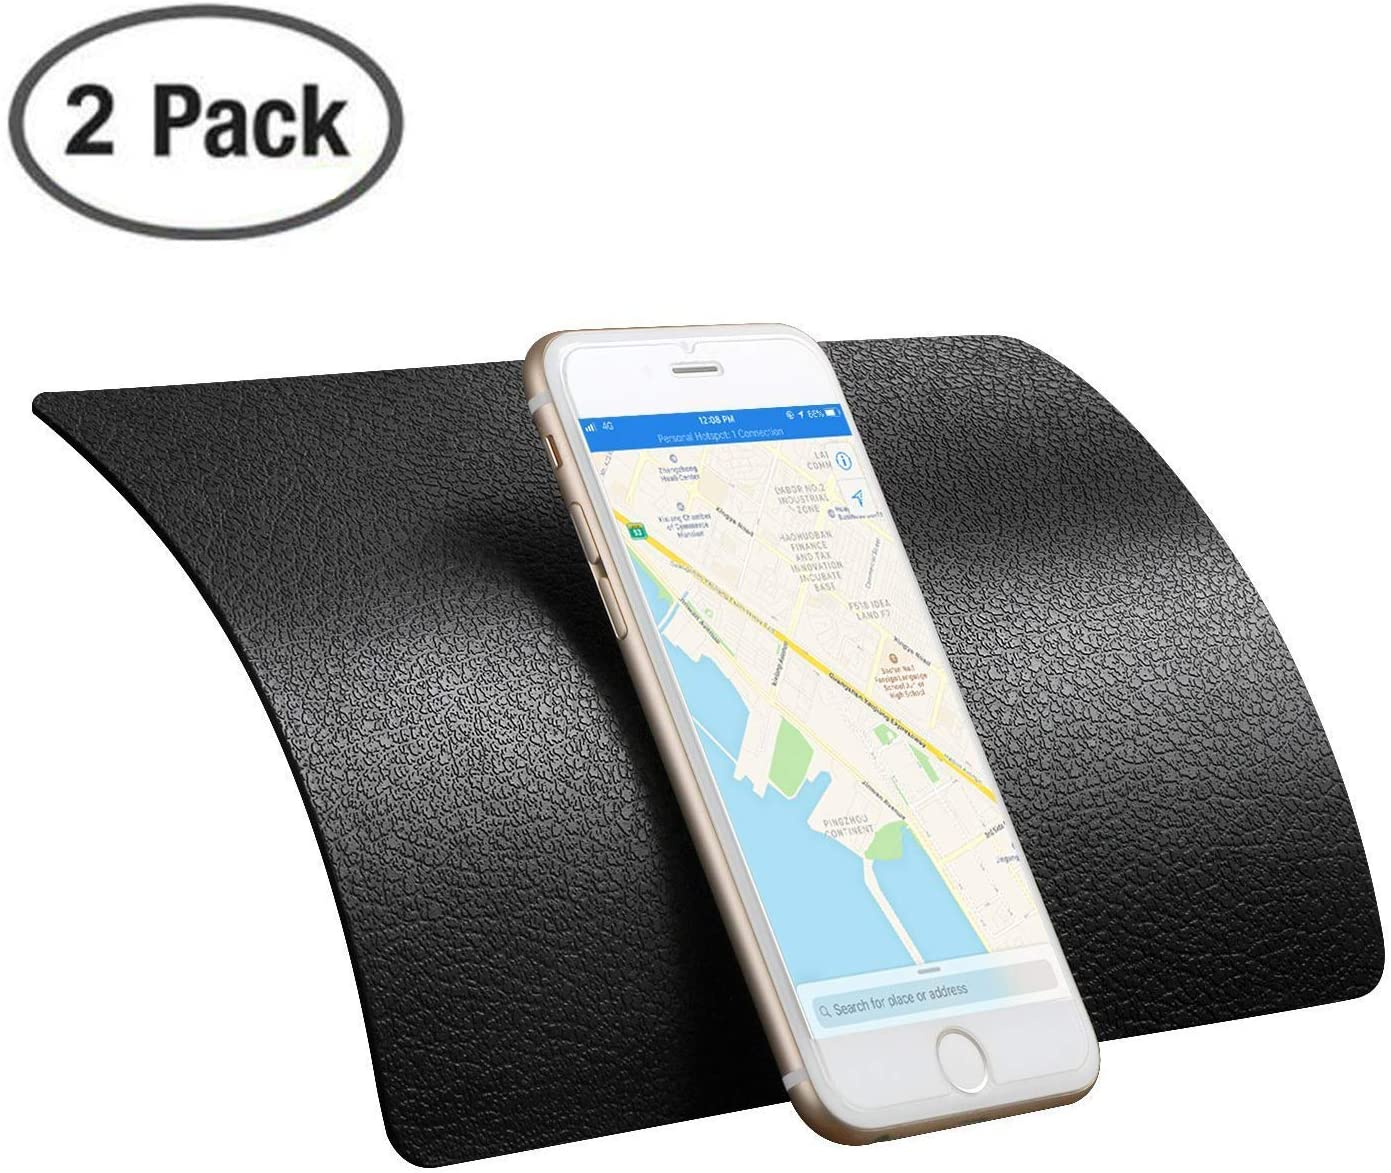 Karlor 2 Pack Sticky Anti-Slip Gel Pads for Cell Phones, Premium Non-Slip Car Dashboard Mat for Cell Phones, Sunglasses, Keys, Speakers,Coins and More-Black (Large Size 8.9 X 5.7 inch)